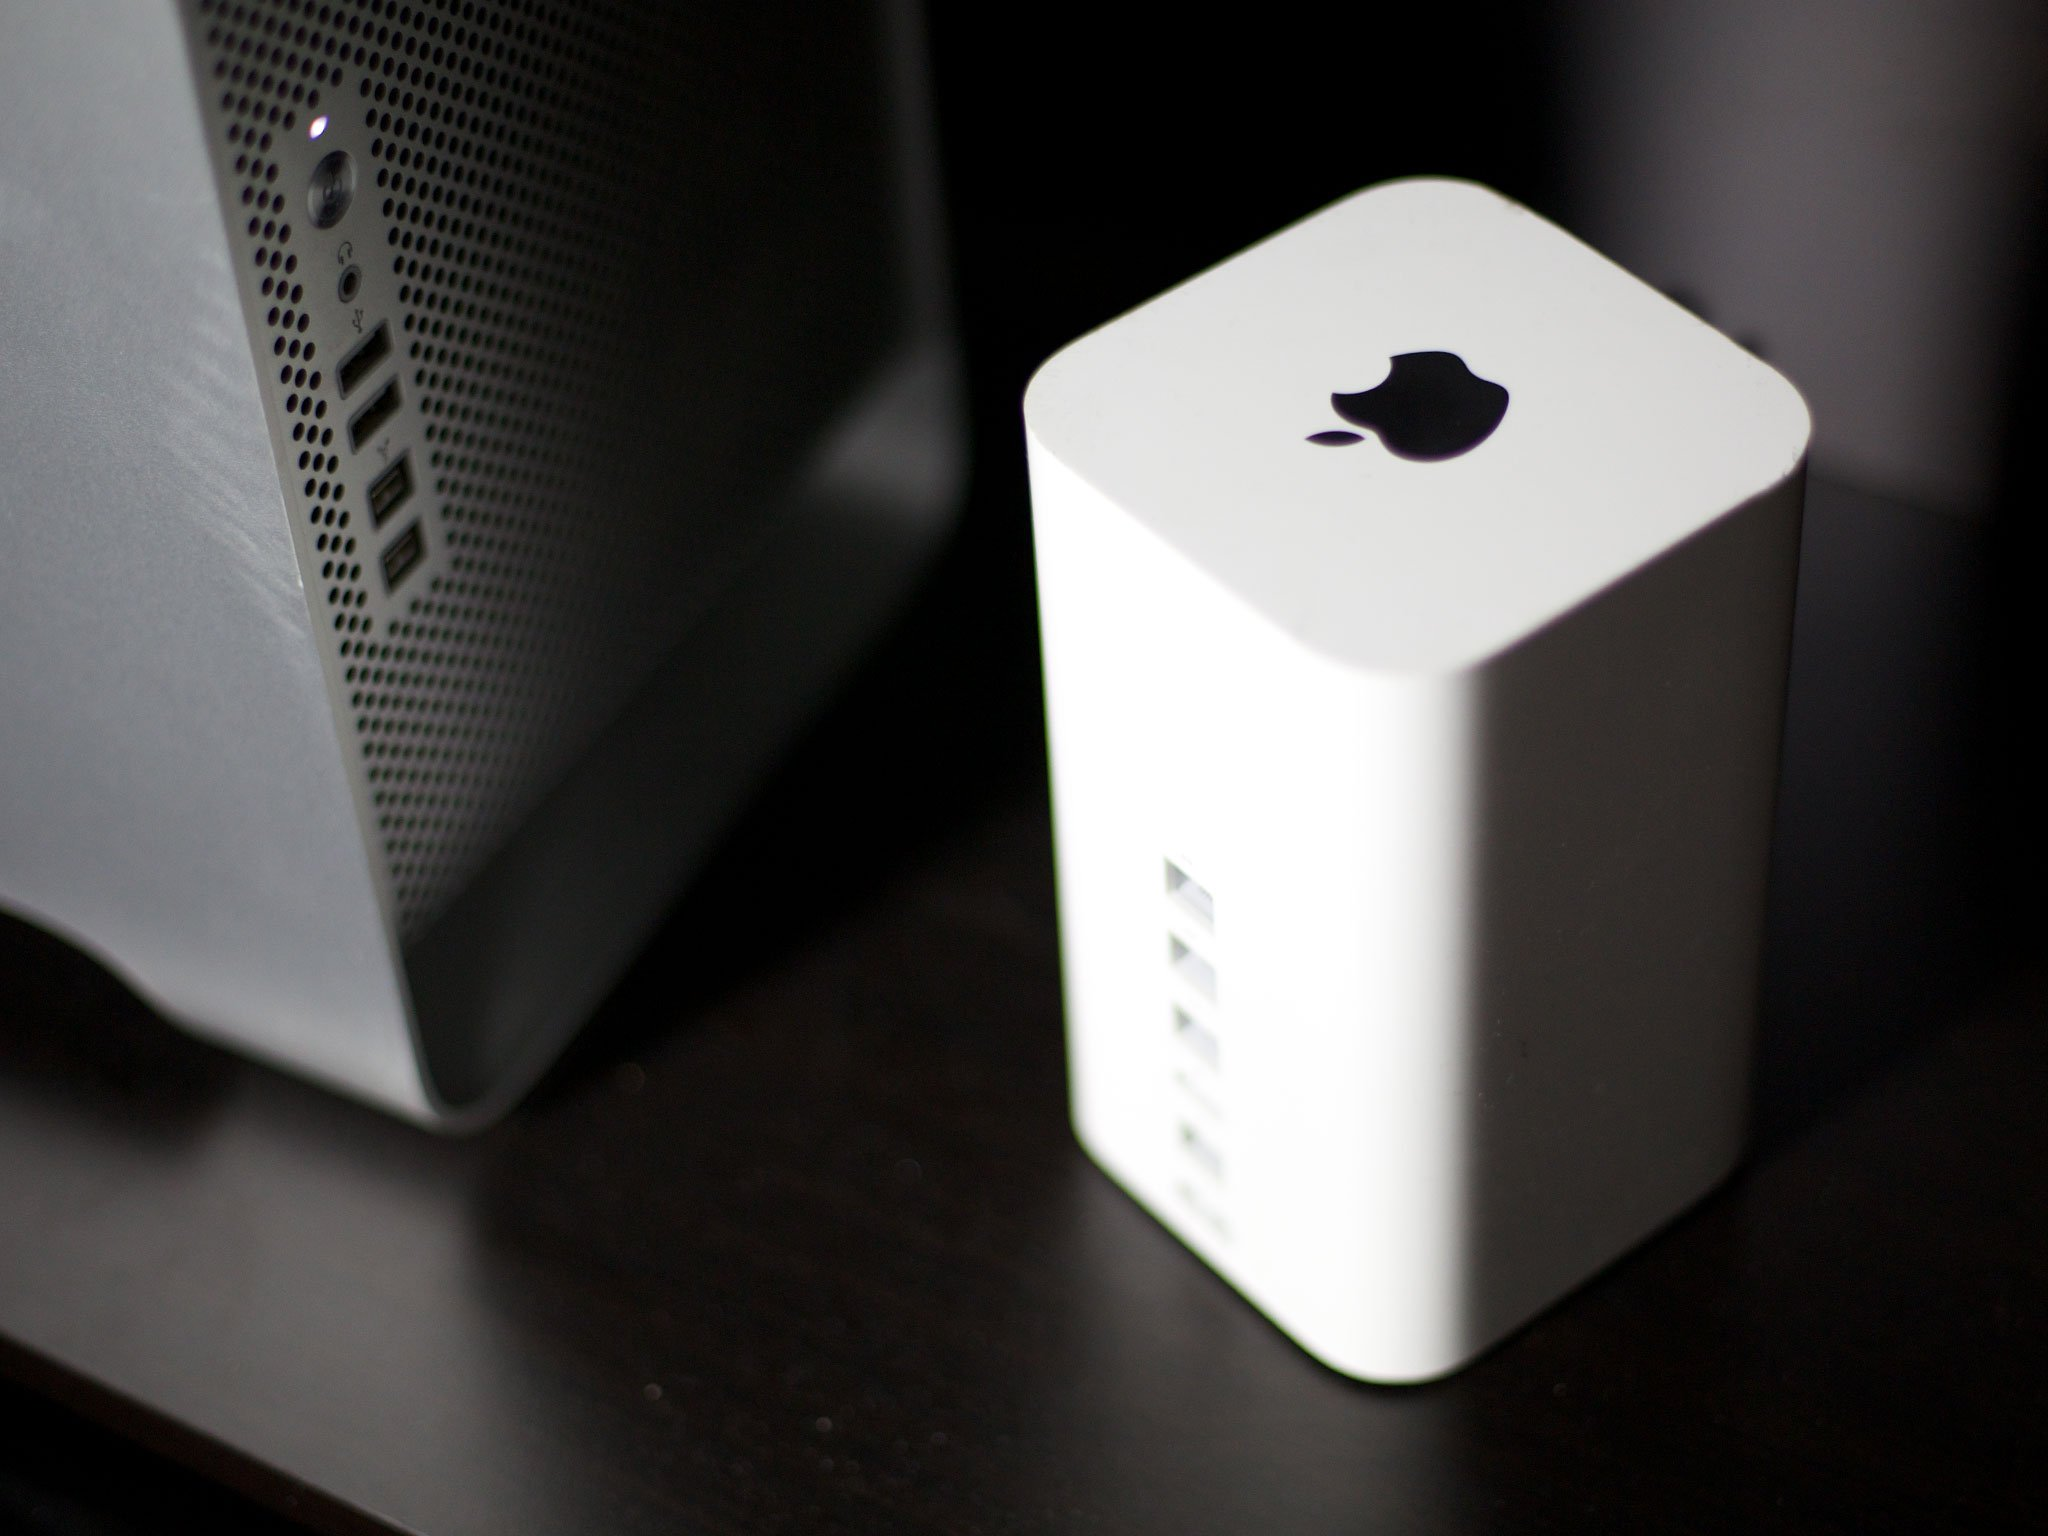 apple airport extreme user manual